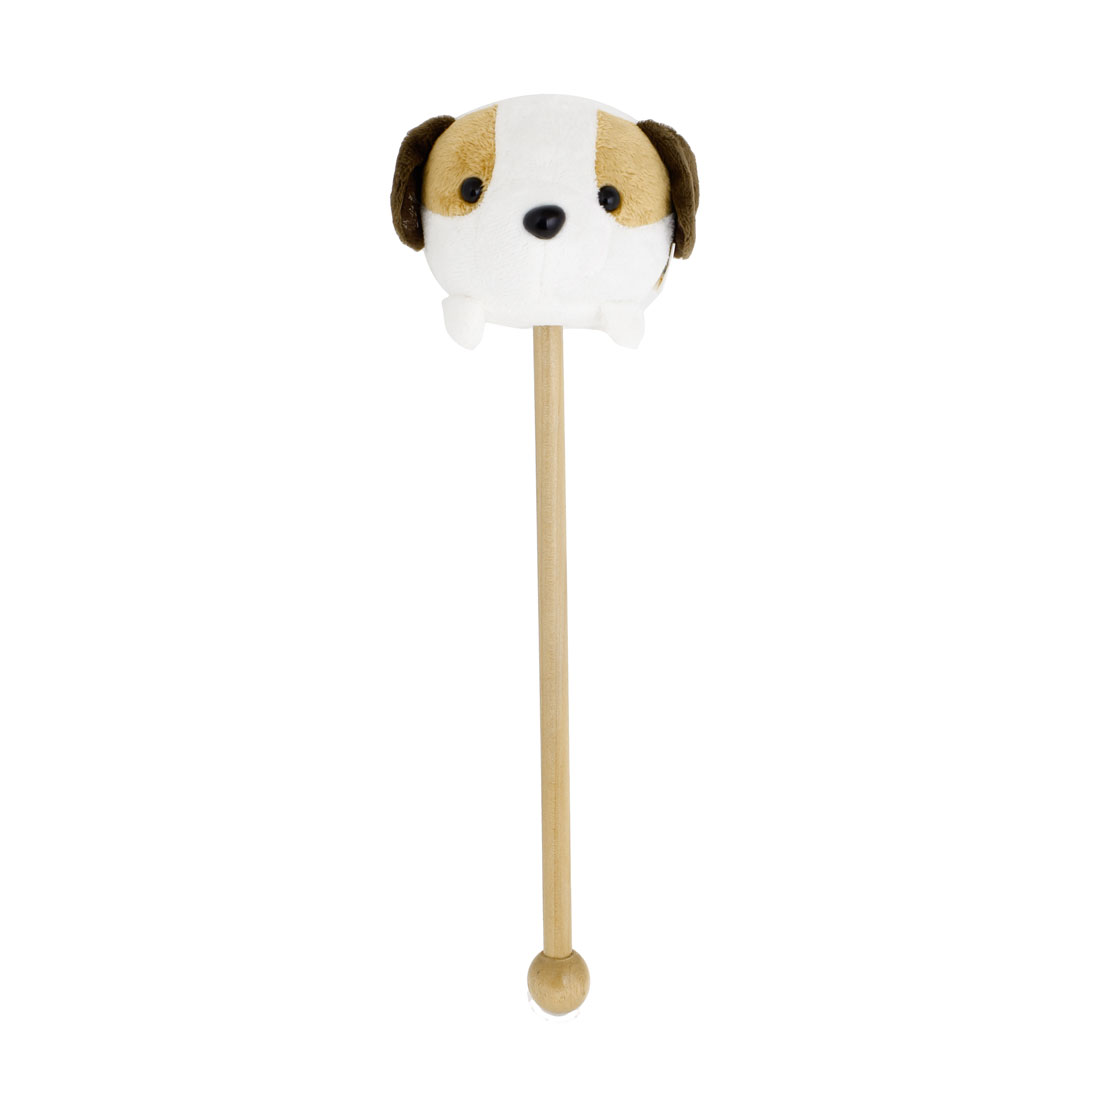 Soft Plush Pug Shaped Tip Wooden Handle Massage Hammer White Brown